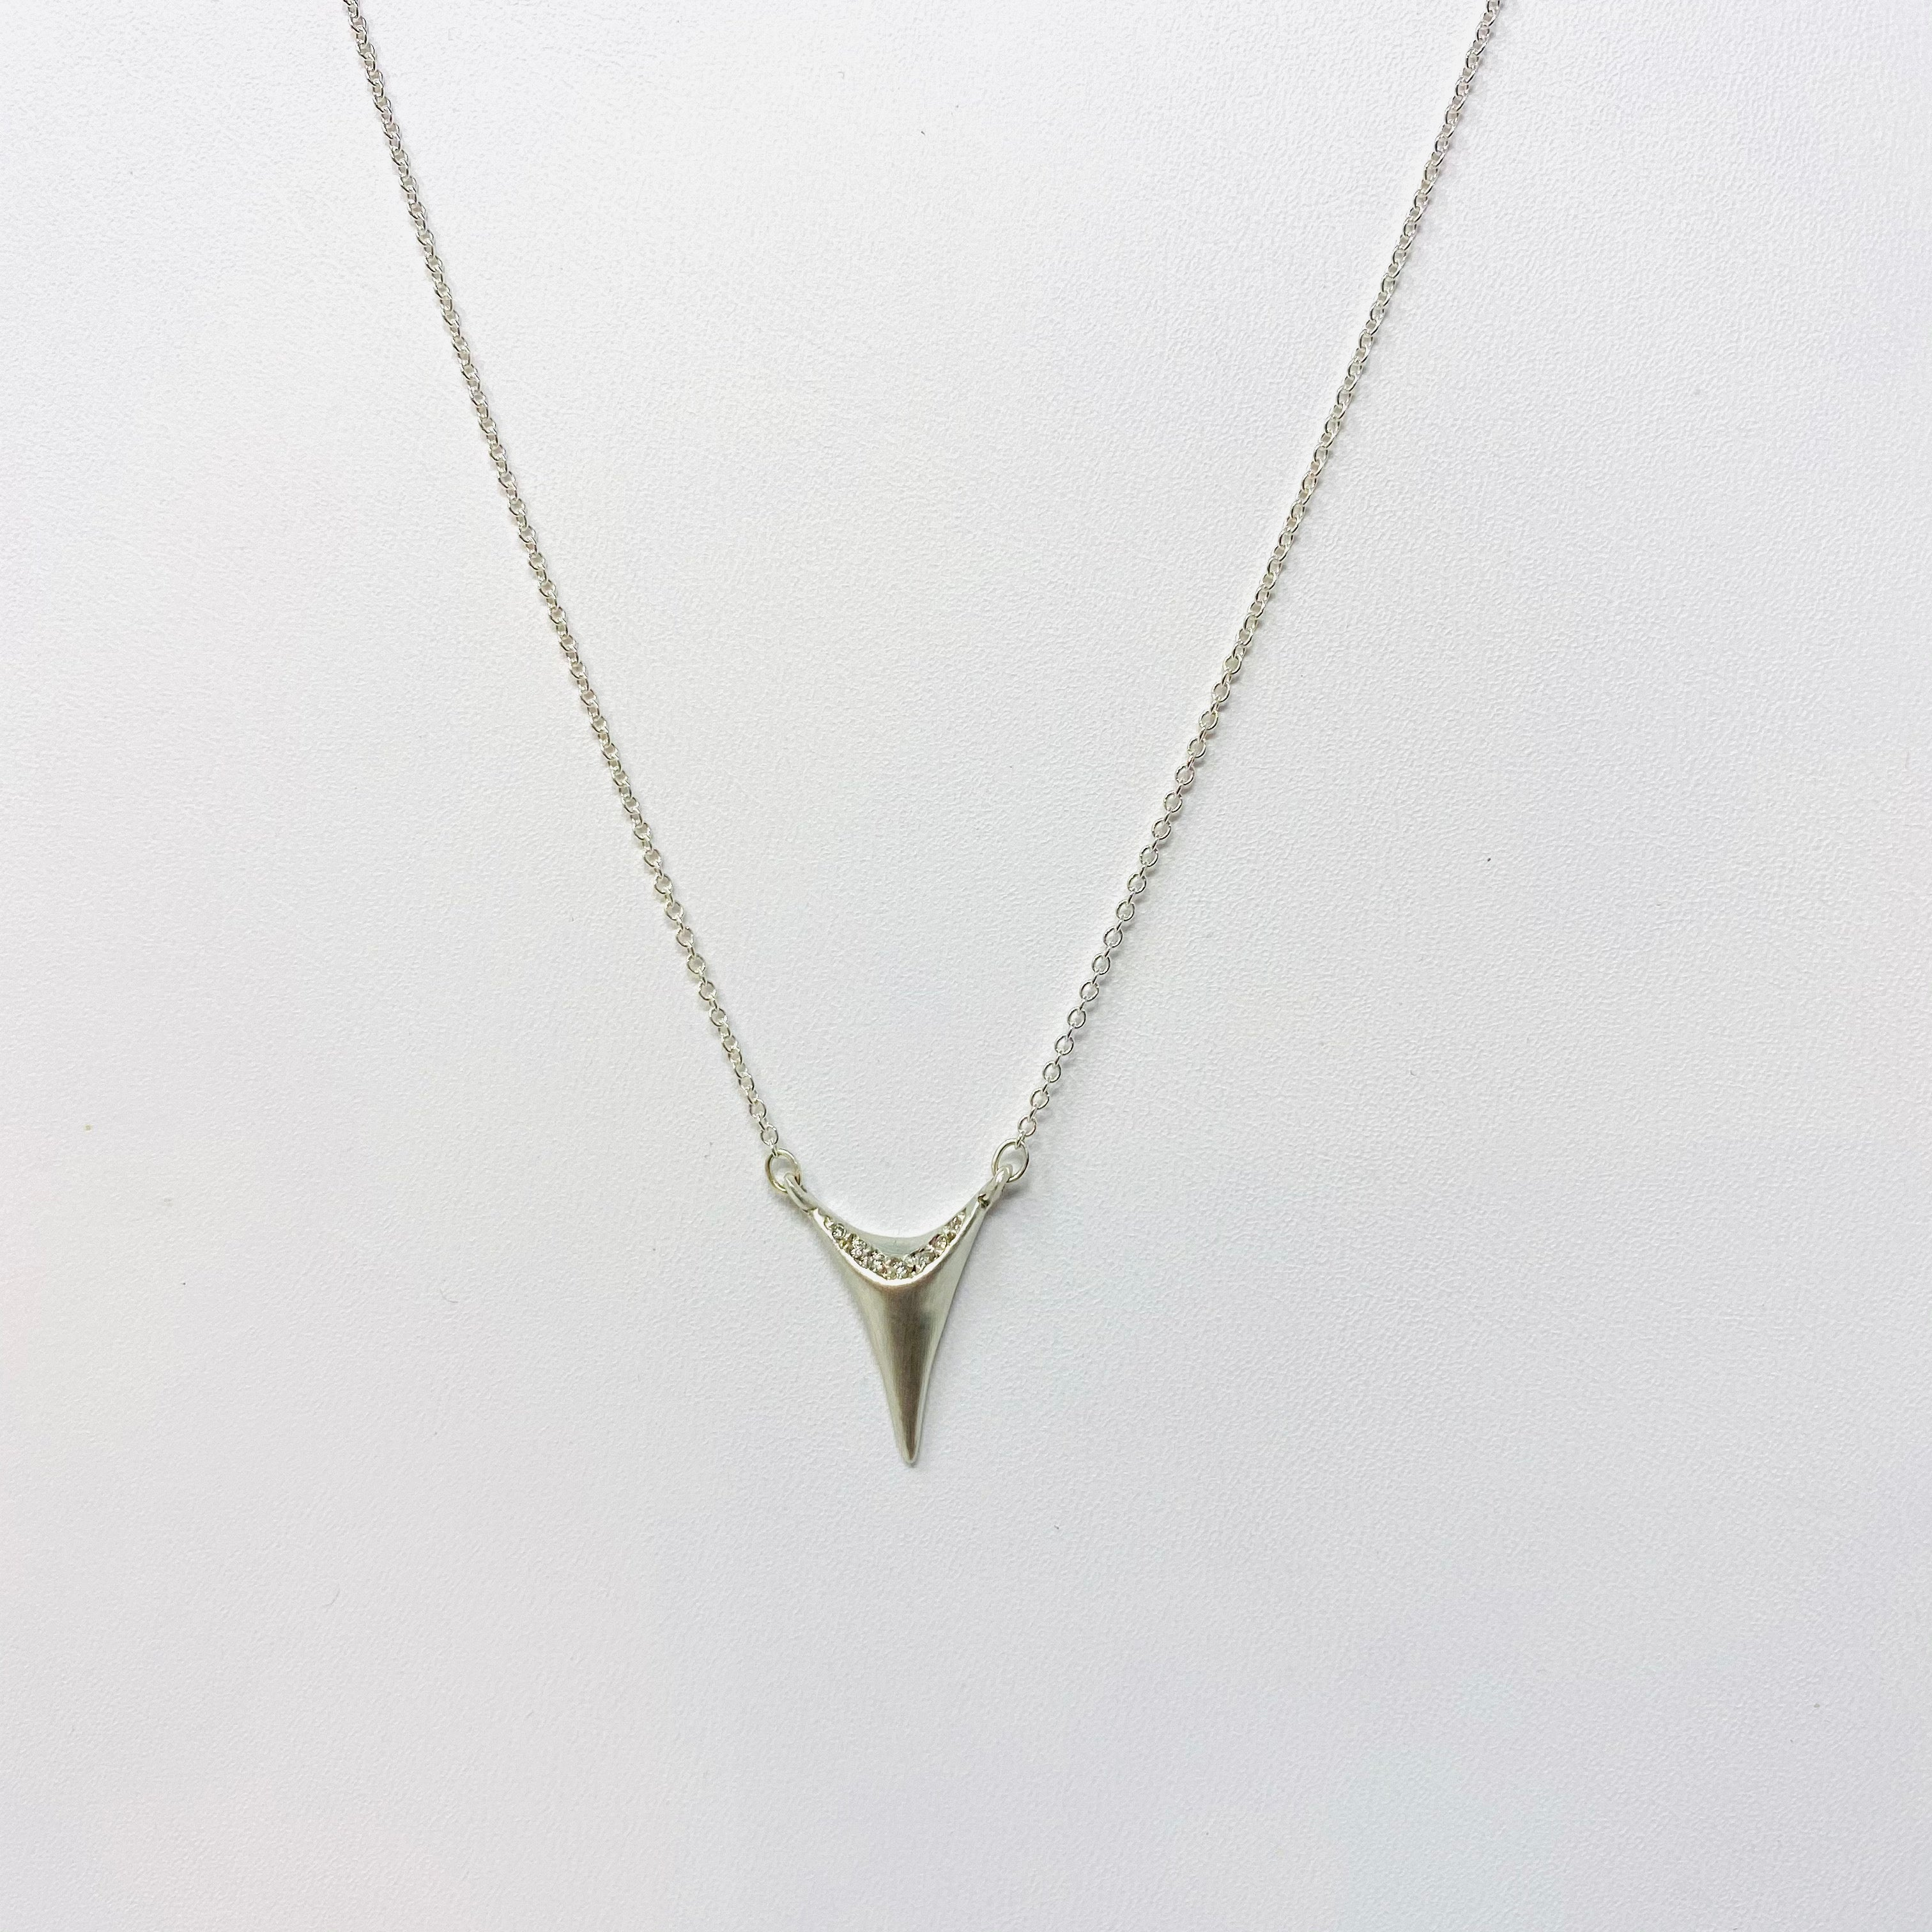 Silver Tooth Necklace Necklace